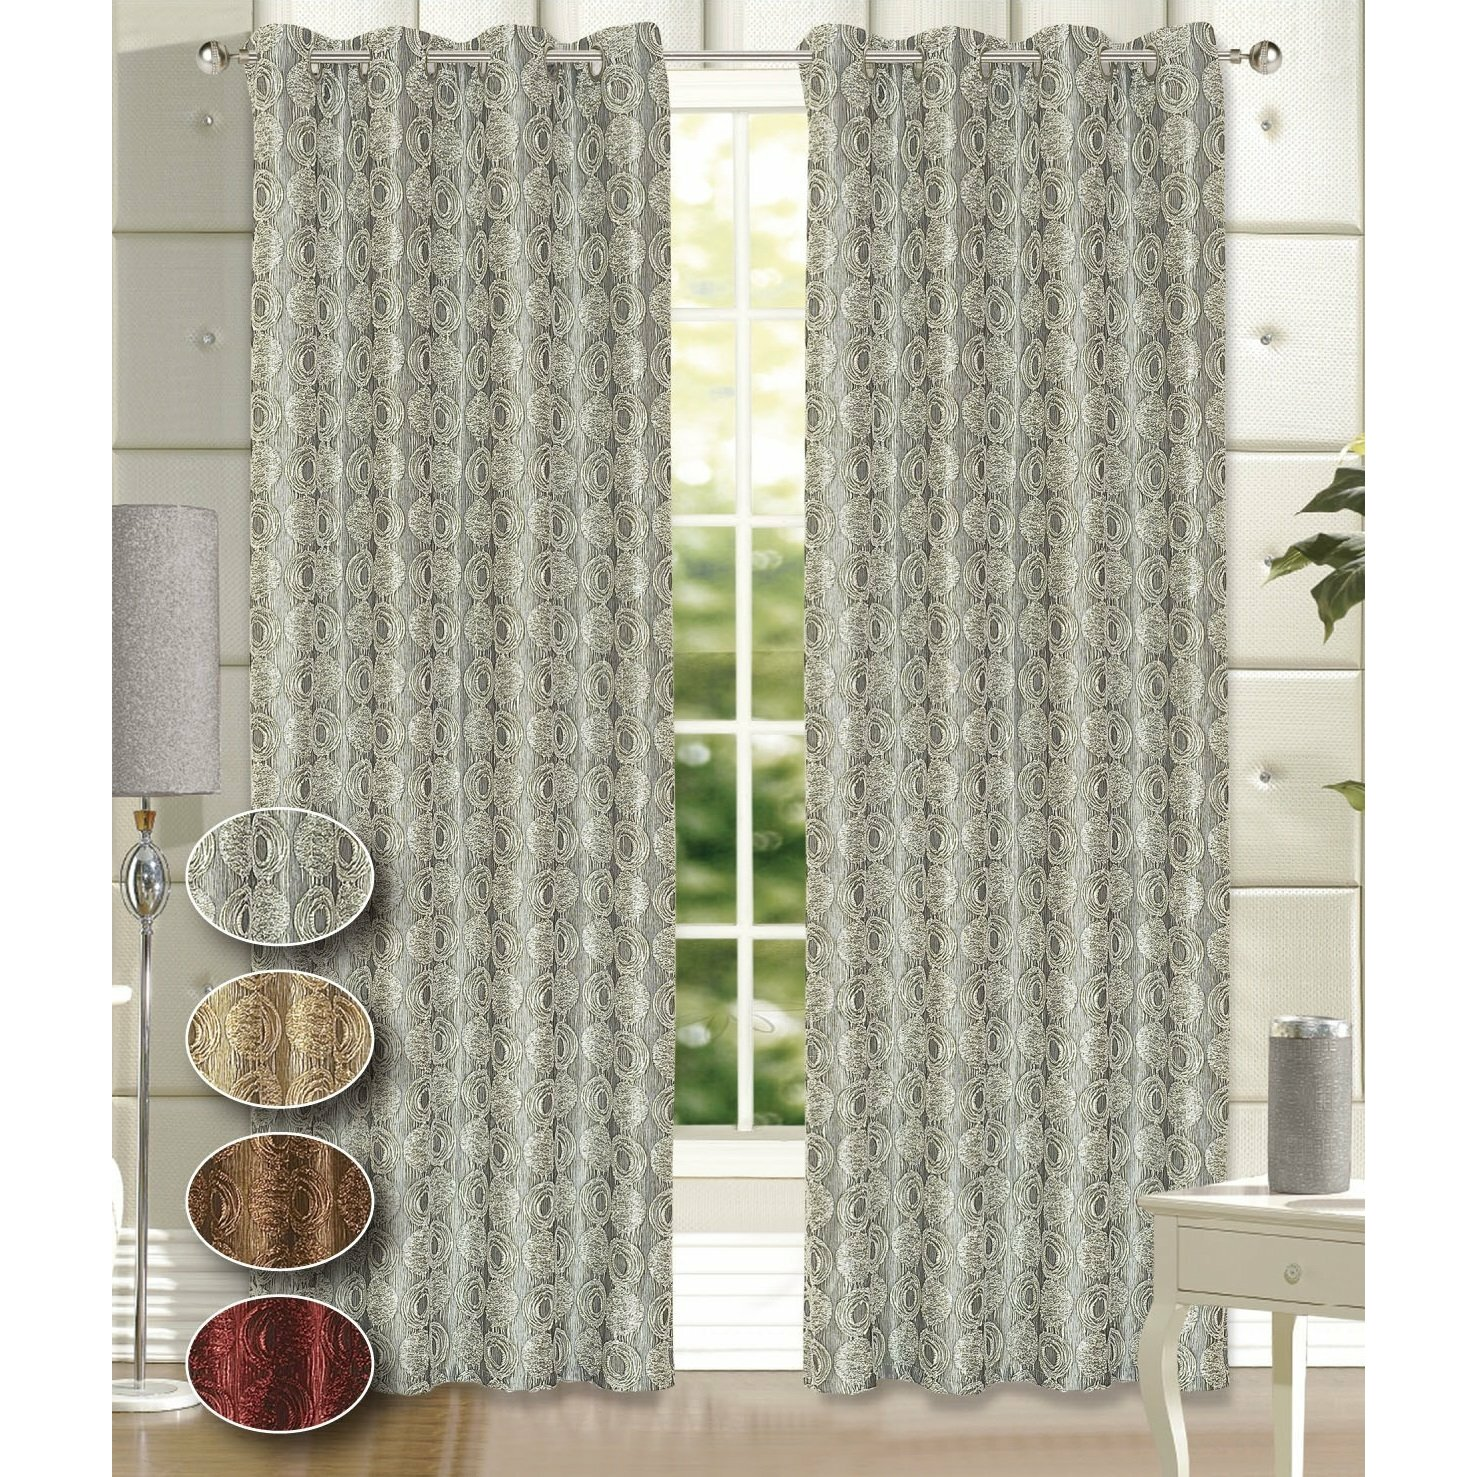 Dainty Home Twilight Polyester Shower Curtain